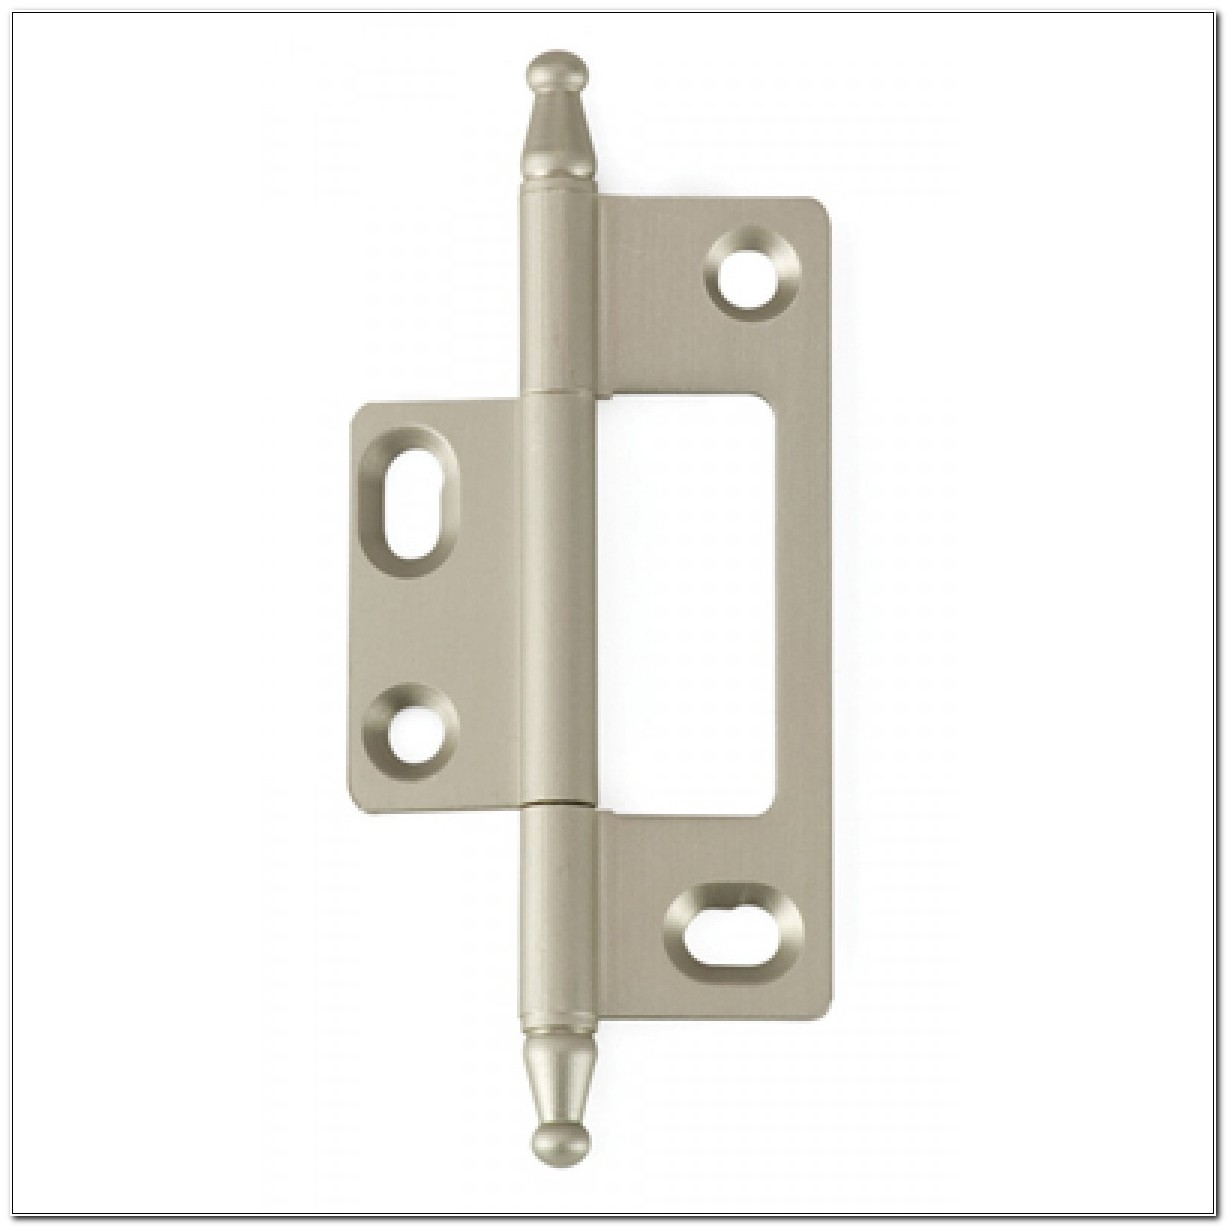 Non Mortise Cabinet Hinges Nickel